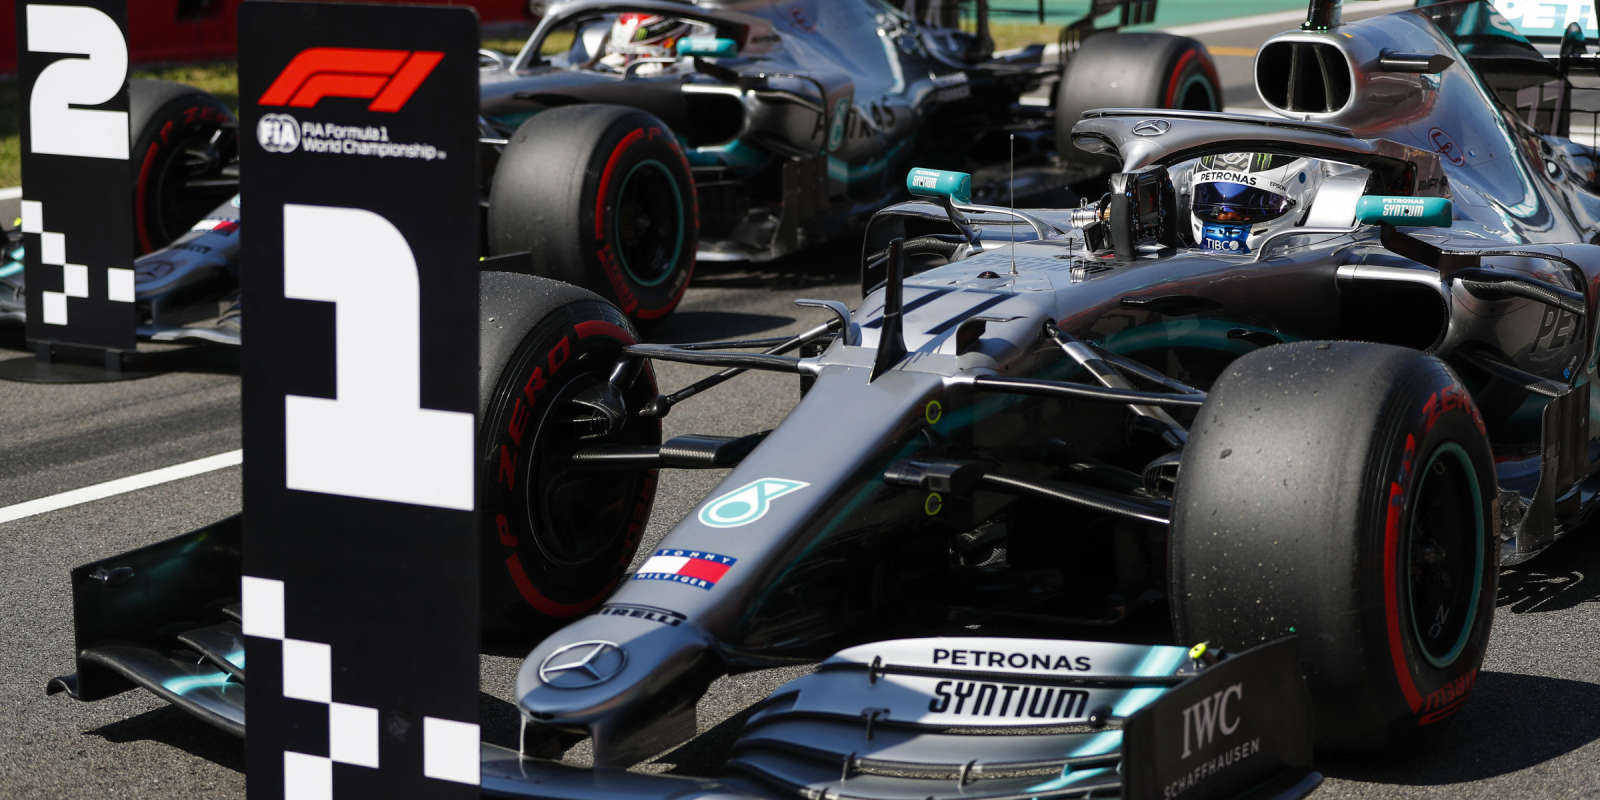 Images from the 2019 F1 Spanish Grand Prix